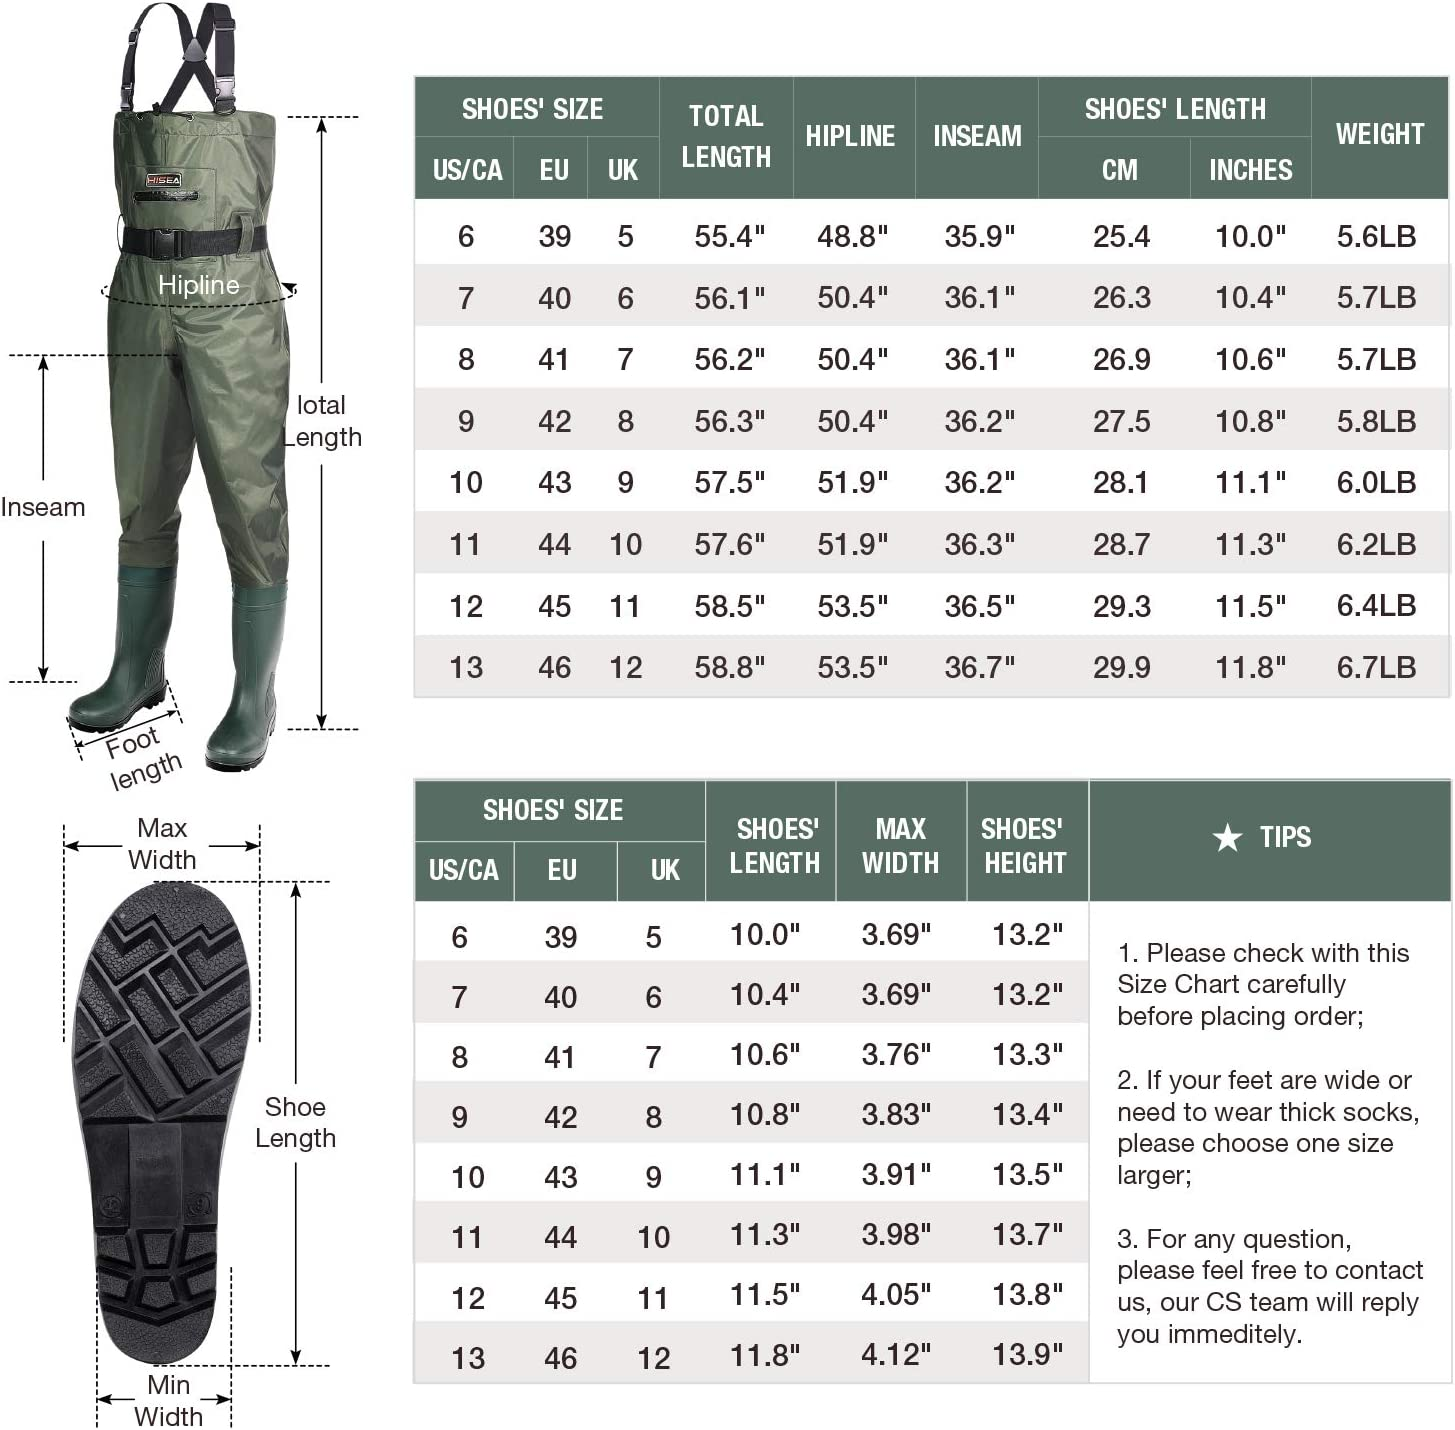 Hisea Upgrade Chest Waders Fishing Waders for Men with Steel Toe Boots Waterproof Lightweight Bootfoot Cleated 2-Ply Nylon//PVC